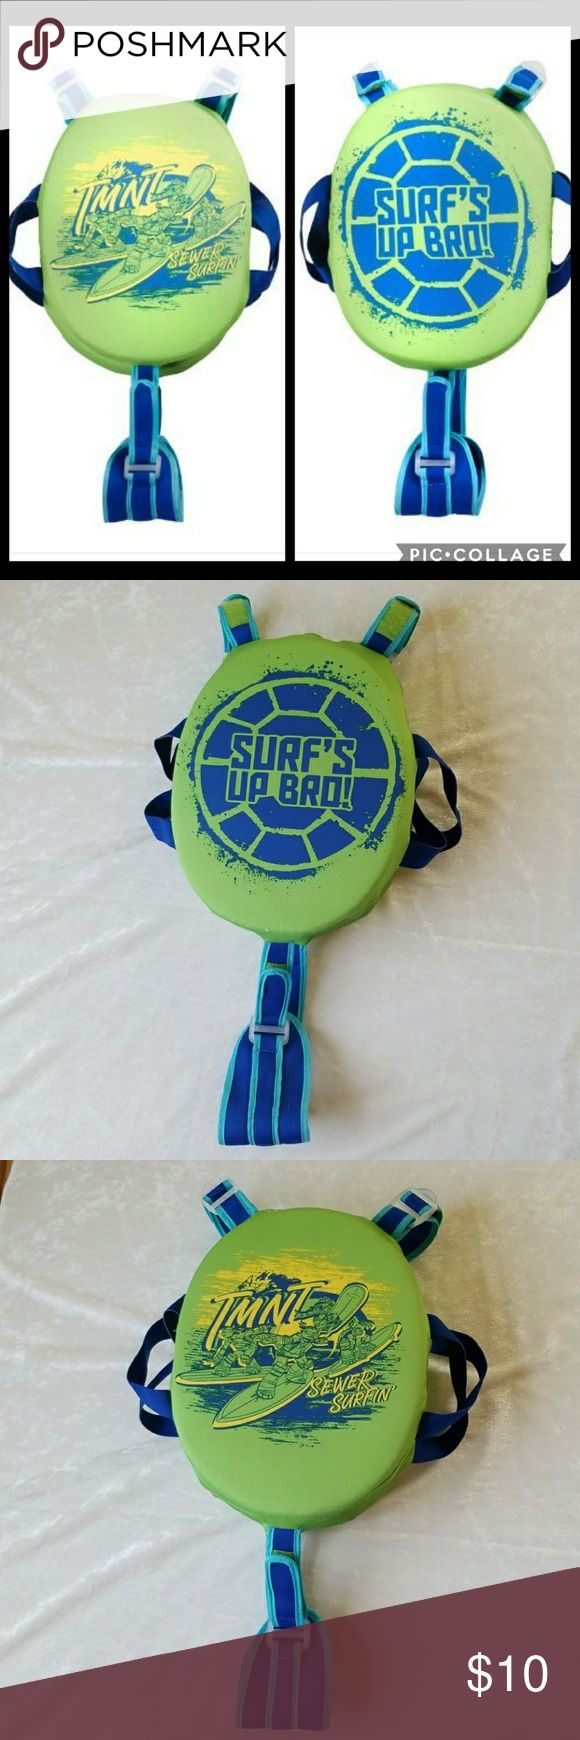 """Nickelodeon Kids TMNT Progressive Swim Pad Trainer Nickelodeon Kid's (boy) Teenage Mutant Ninja Turtles Progressive Swim Pad Trainer (good for 40-55 lbs. kid)  Product Dimension: 9.7"""" x 8.0 x 2.5"""" Child weight min.: 40 lbs. Child weight max.: 55 lbs. Material: 100% polyester --->adjustable velcroo straps ( 5th and 6th photos) --->removable pads ---> in great used condition. Feel free to ask. Nickelodeon Swim"""